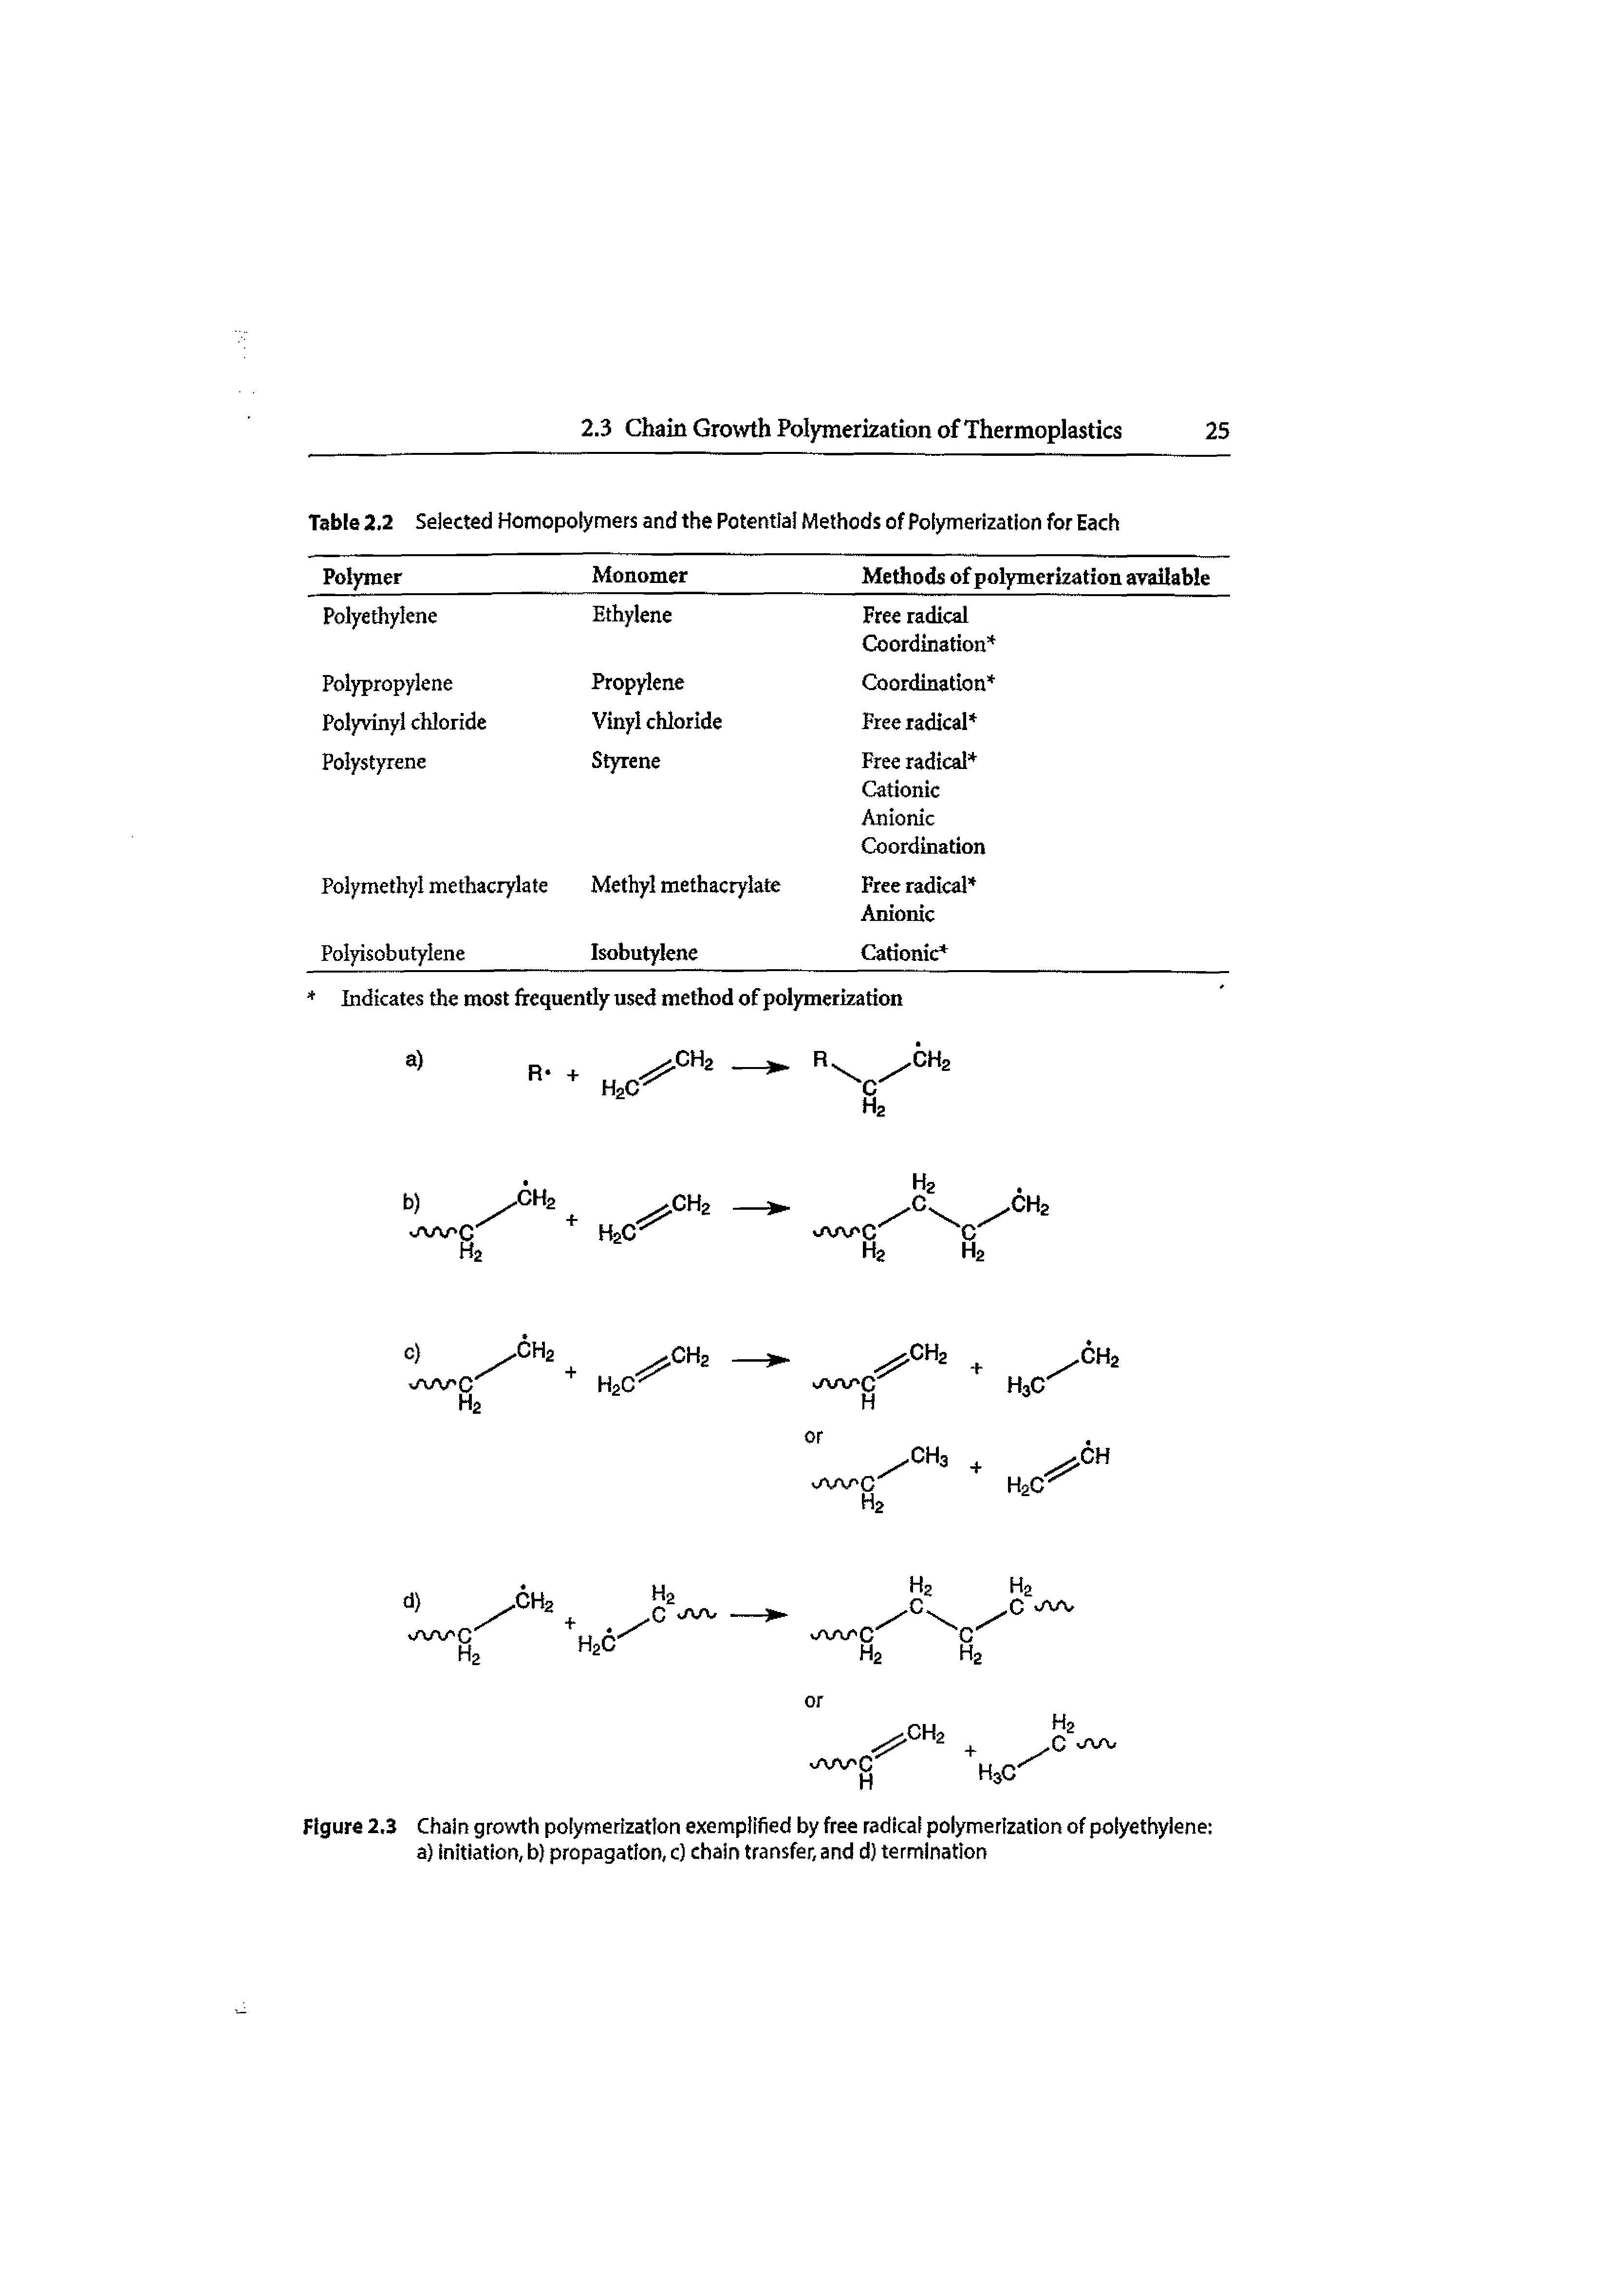 "Figure 2,3 <a href=""/info/chain_growth_polymerization"">Chain growth polymerization</a> exemplified by <a href=""/info/polymerization_free_radical"">free radical polymerization</a> of polyethylene a) initiation, b) propagation, c) <a href=""/info/chain_transfer"">chain transfer</a>, and d) termination"